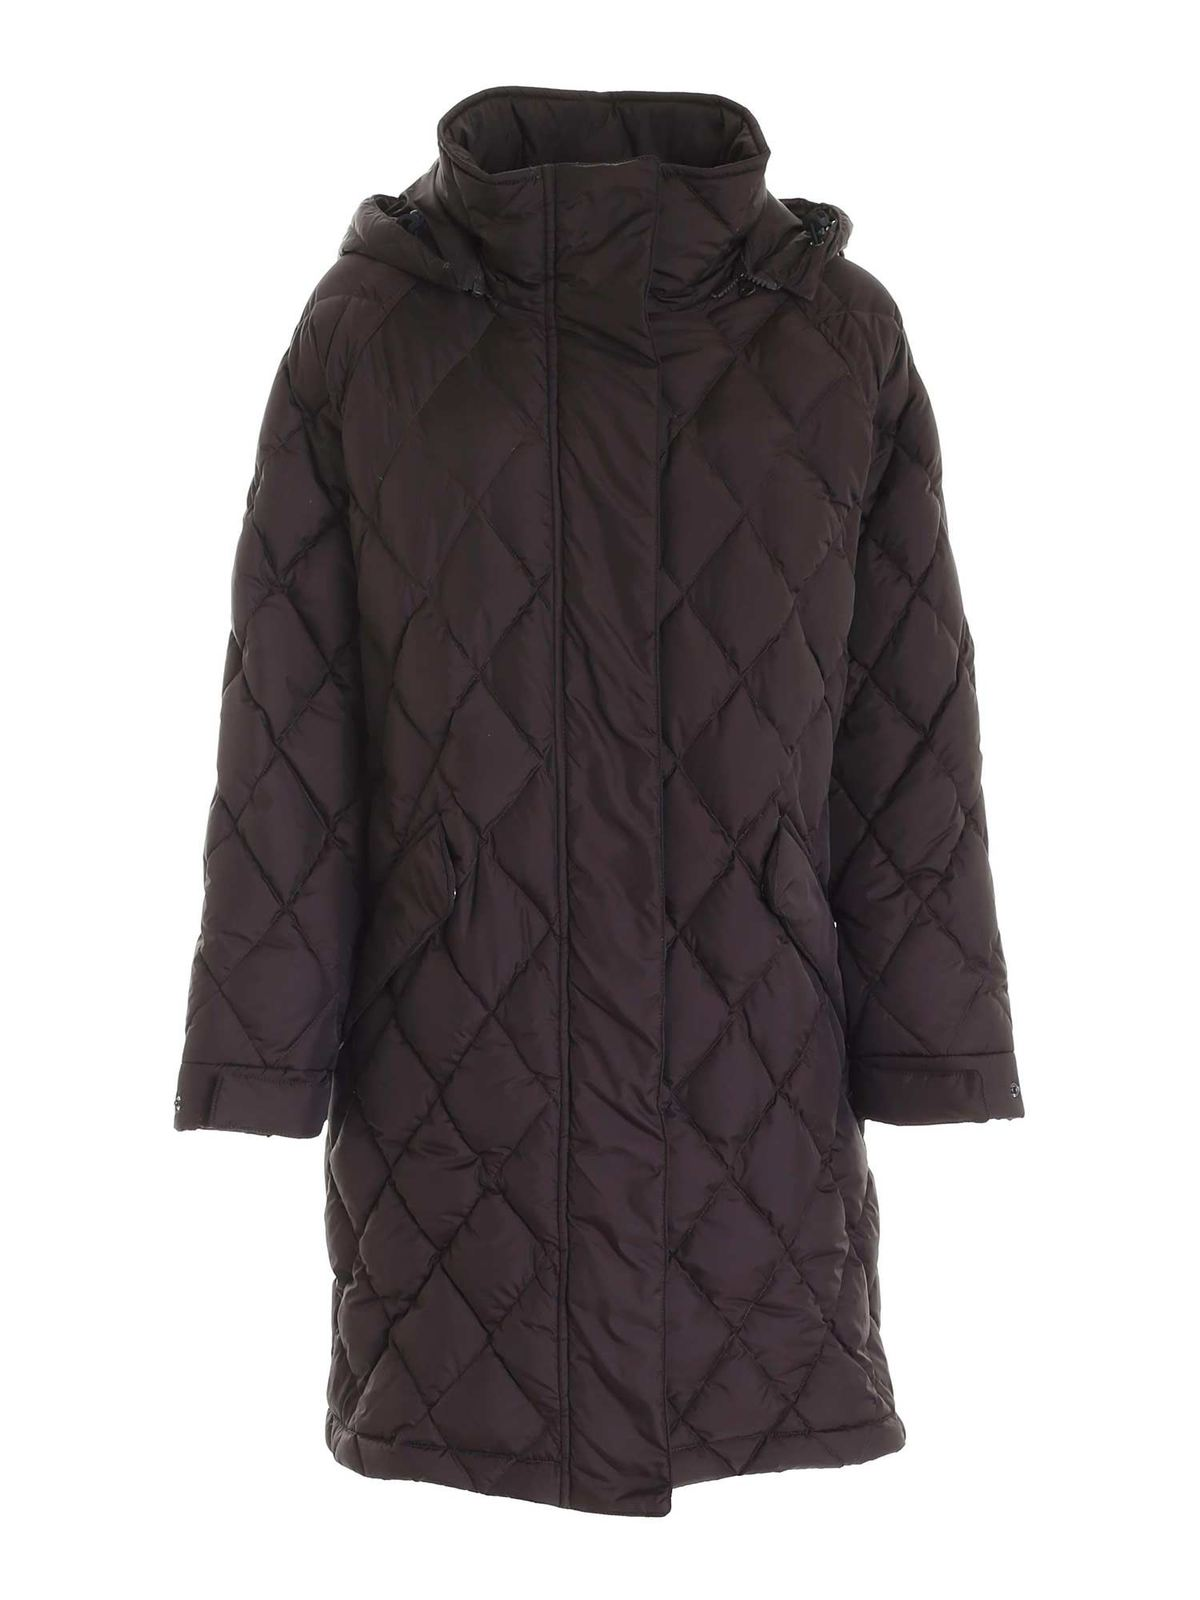 Aspesi HOODED QUILTED DOWN JACKET IN BROWN